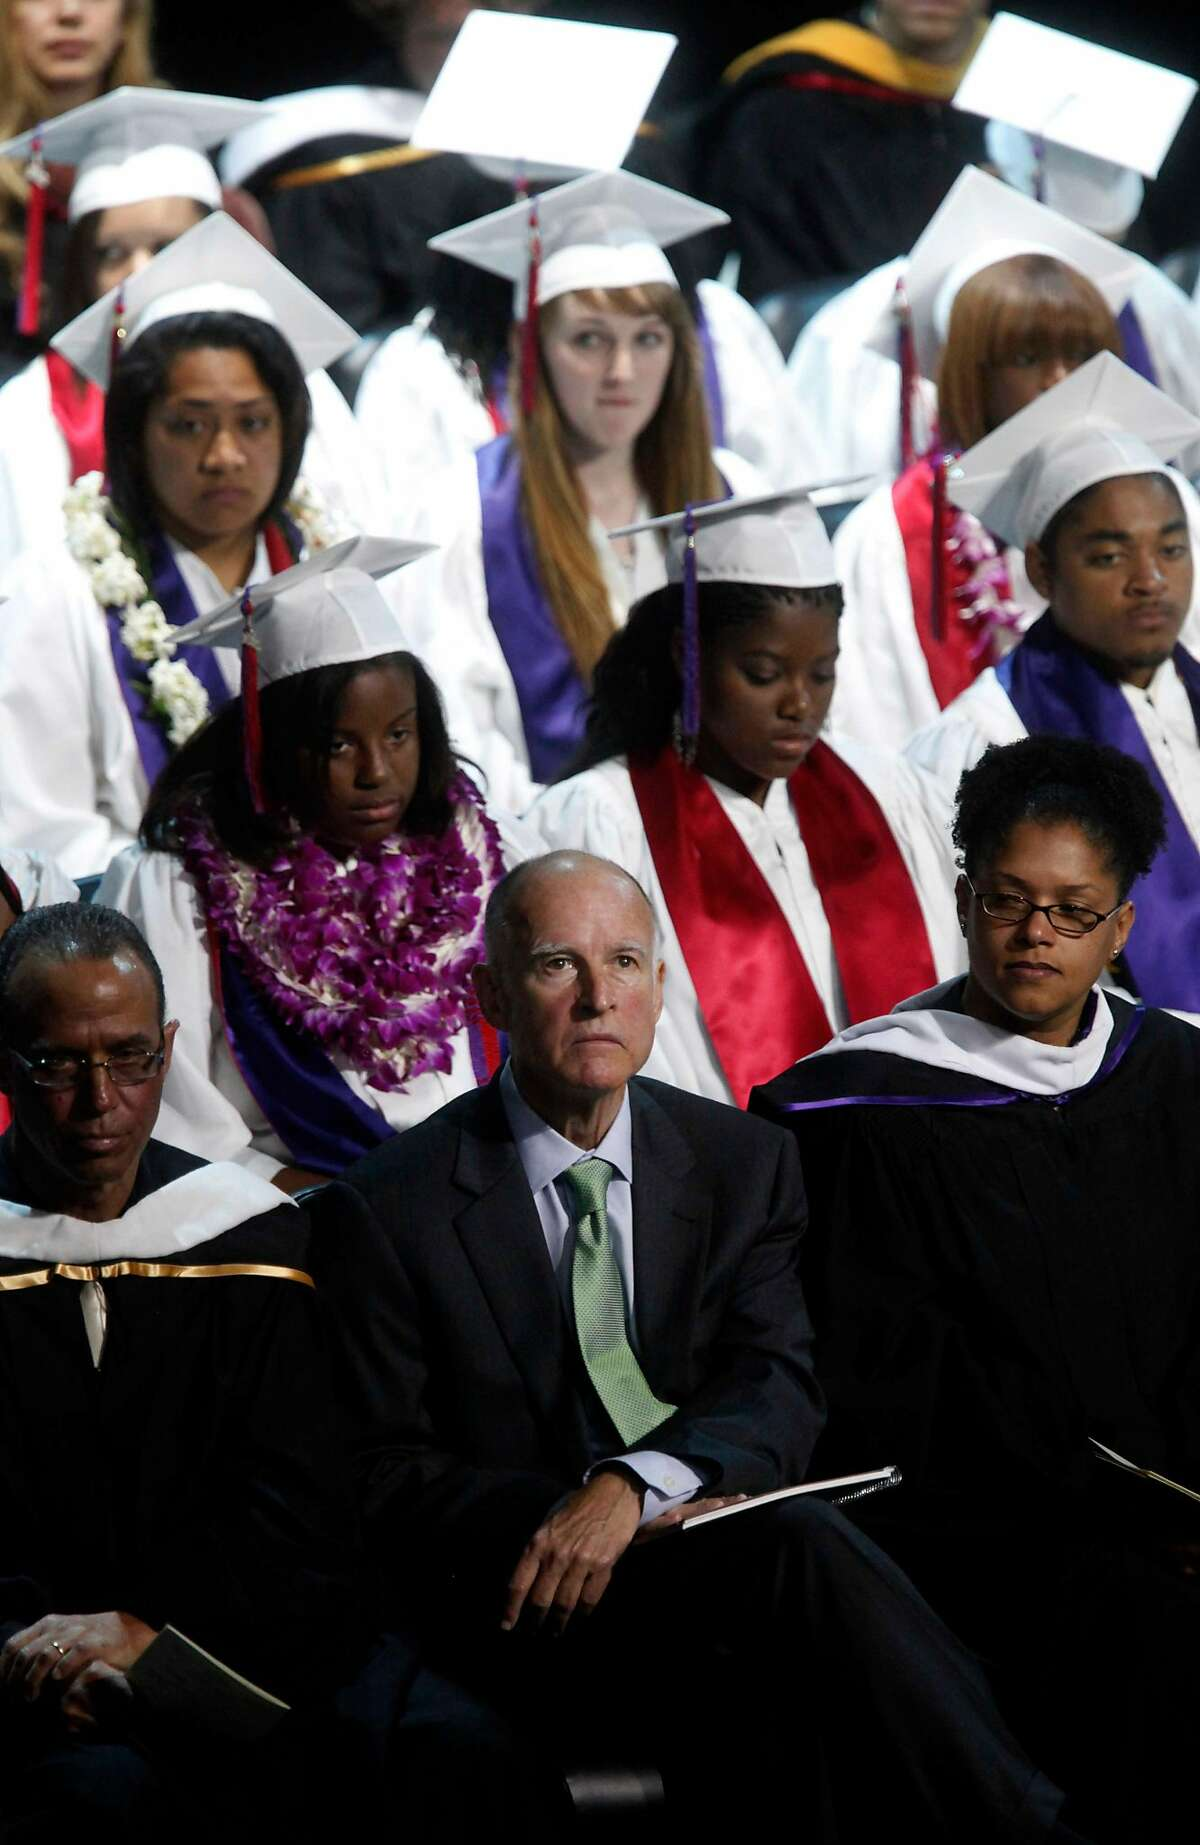 Attorney General and Gubernatorial candidate, Jerry Brown looks up after speaking at the Oakland School for the Arts graduation ceremony on Thursday June 17, 2010 in Oakland, Calif. Brown helped get the charter school off the ground years back is now being blamed by GOP nominee Meg Whitman for the demise of Oakland public schools.